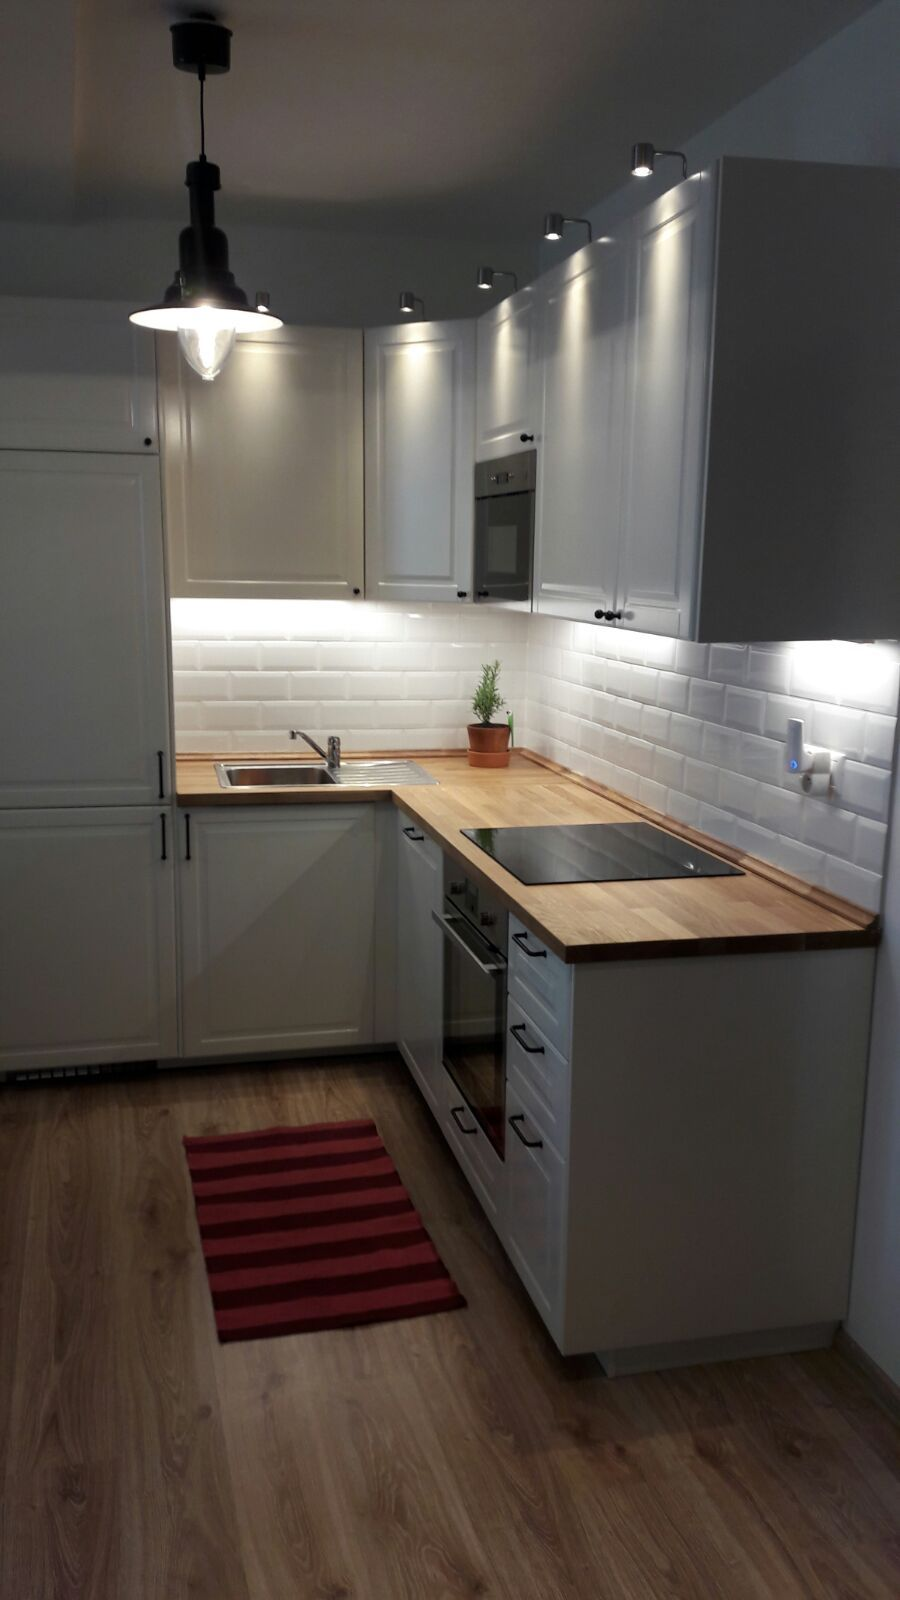 Ikea Küche L Form I'm In Love With My New Ikea Bodbyn Kitchen With French Metro Tiles. It's Small But Has Everything I… | Kitchen Design Small, Kitchen Layout, Budget Kitchen Remodel